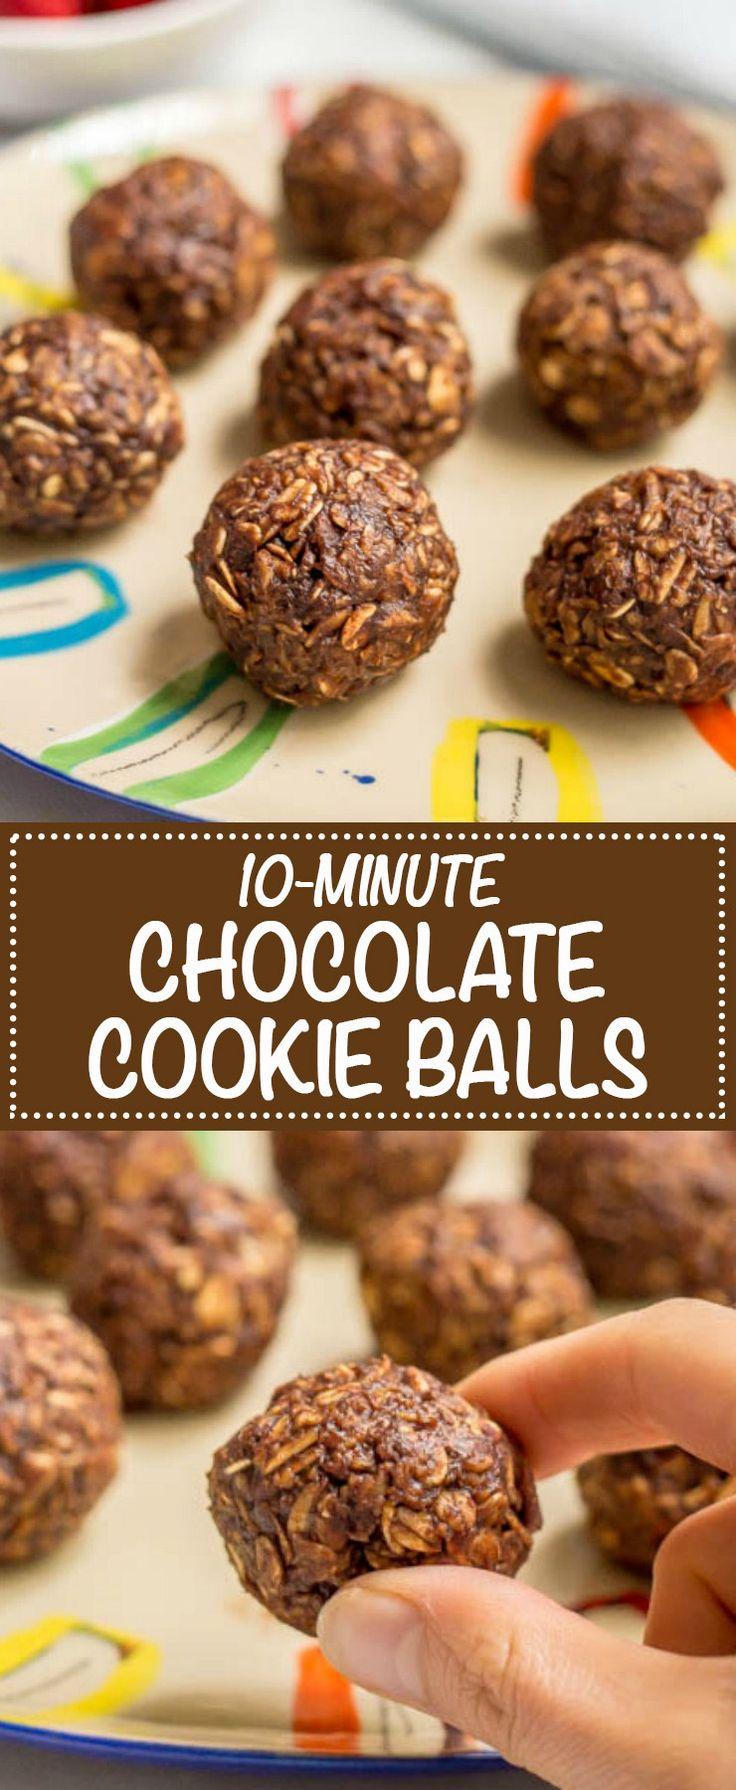 These 10-minute no-bake chocolate cookie balls use just 6 wholesome ingredients for an easy, tasty snack that's also gluten-free and vegan! | www.familyfoodonthetable.com